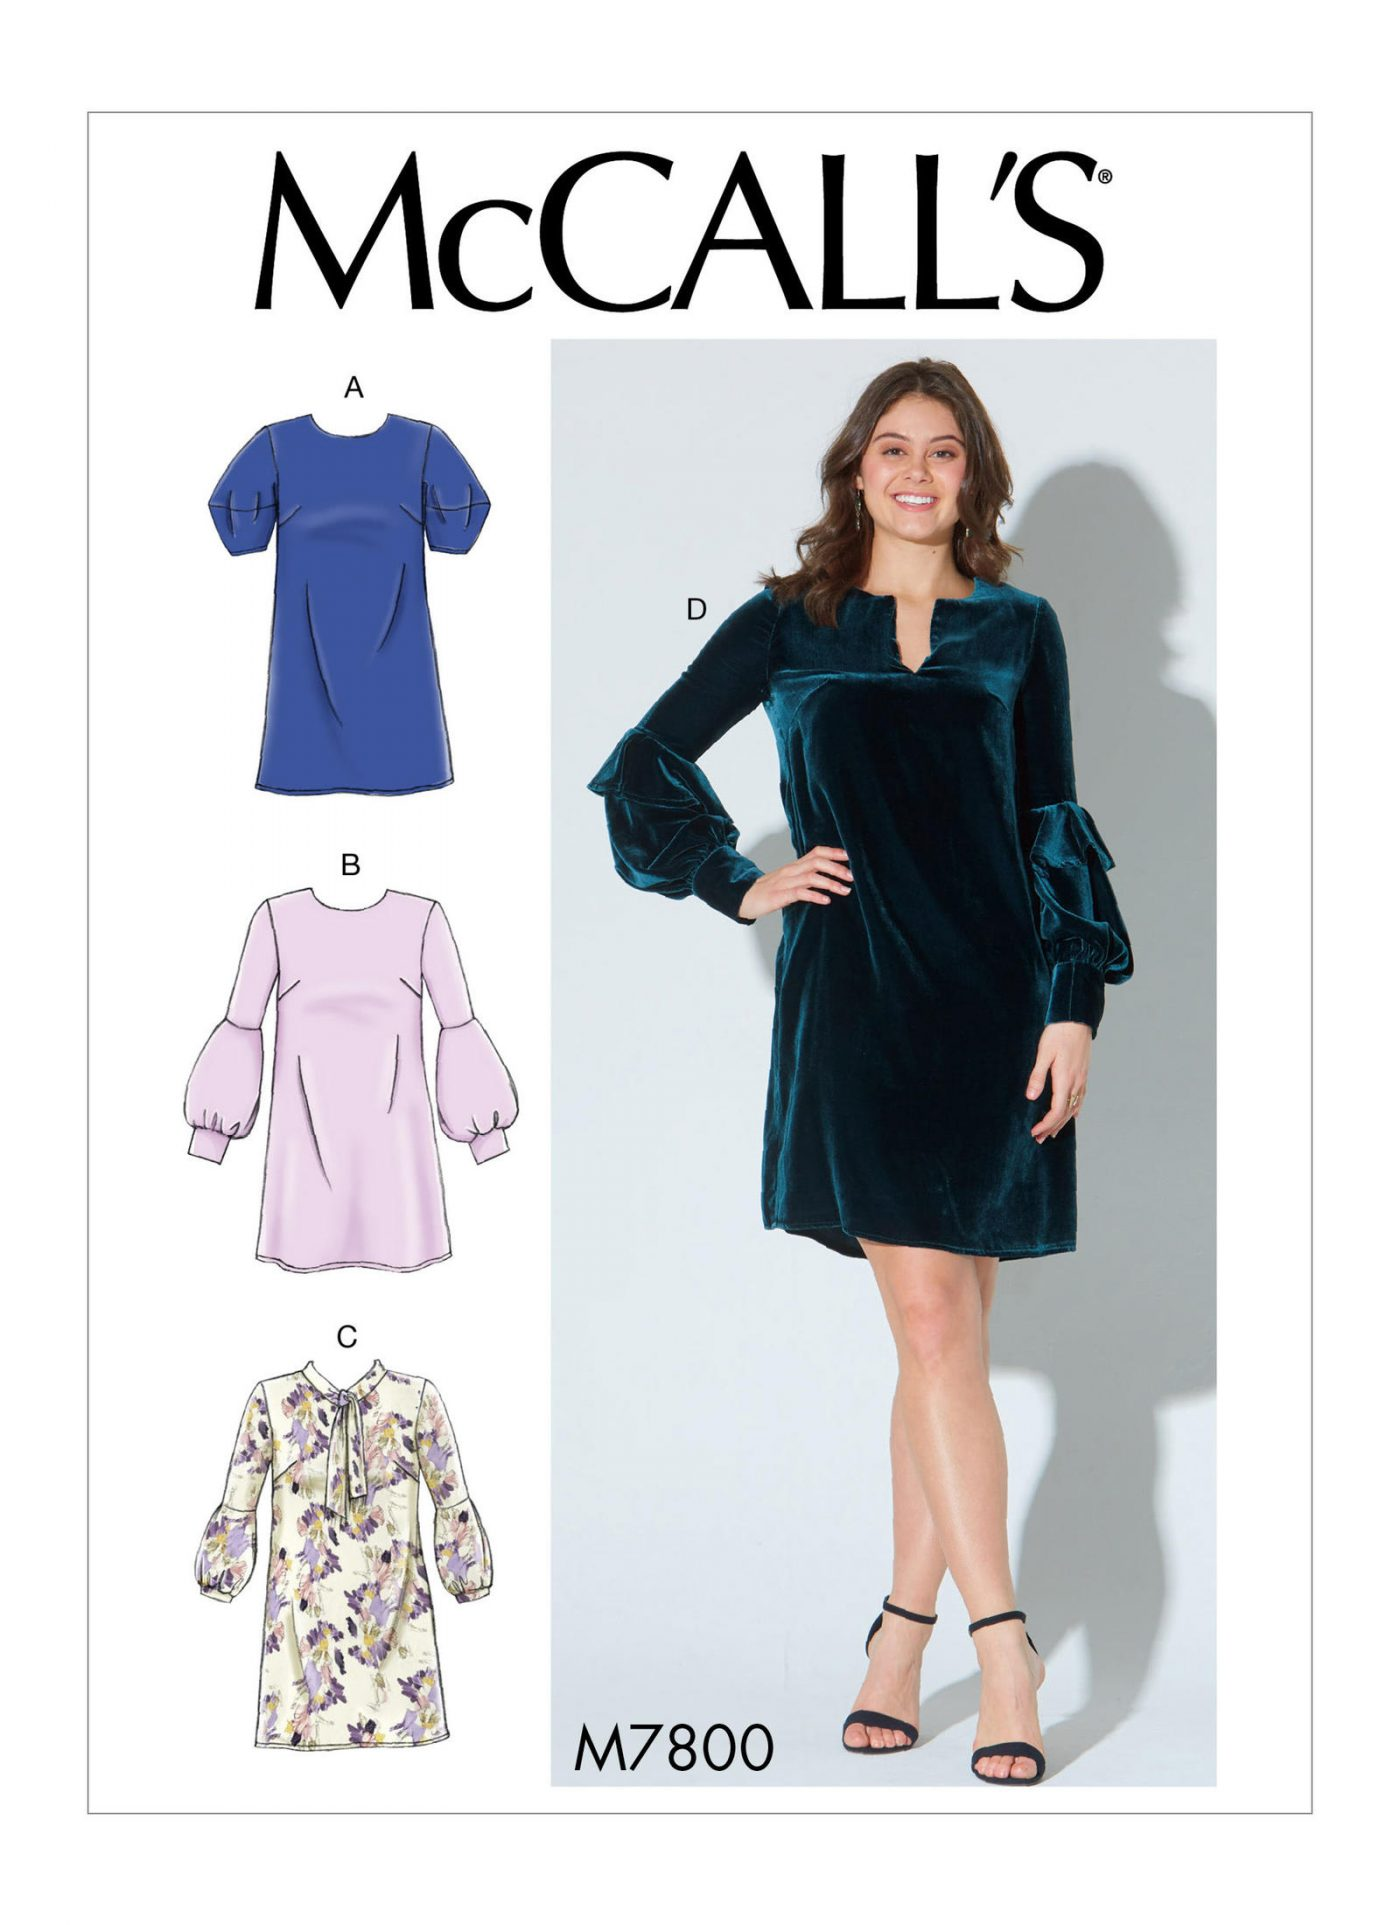 McCalls 7800. Autumn/Winter '18 Trends to inspire your sewing